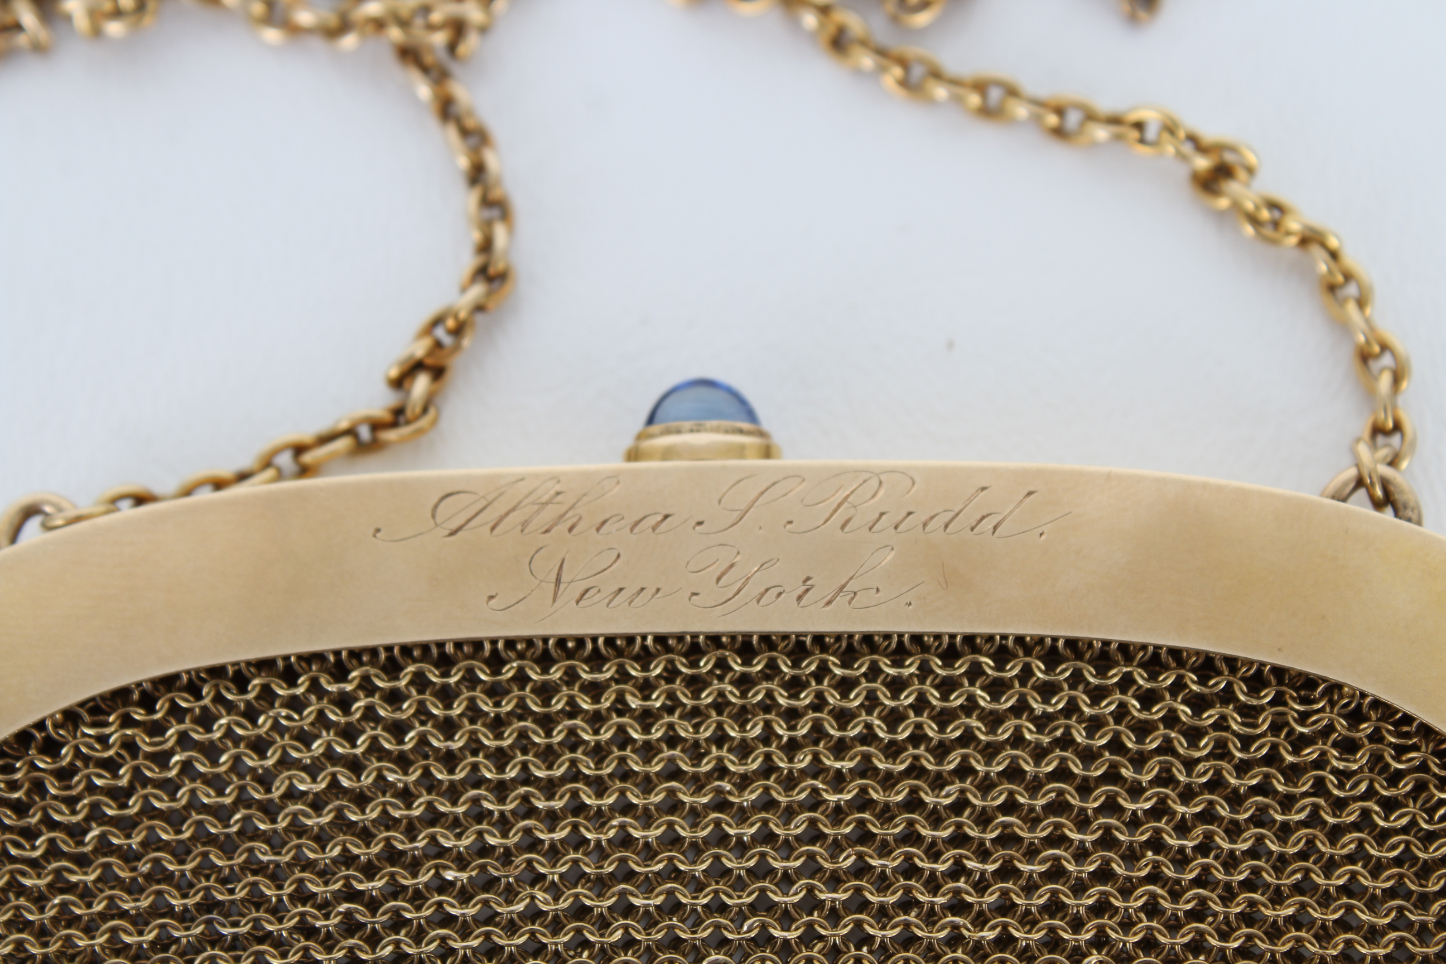 14K Gold Mesh Coin Purse w/ Diamond & Ruby Clasp - Image 6 of 6